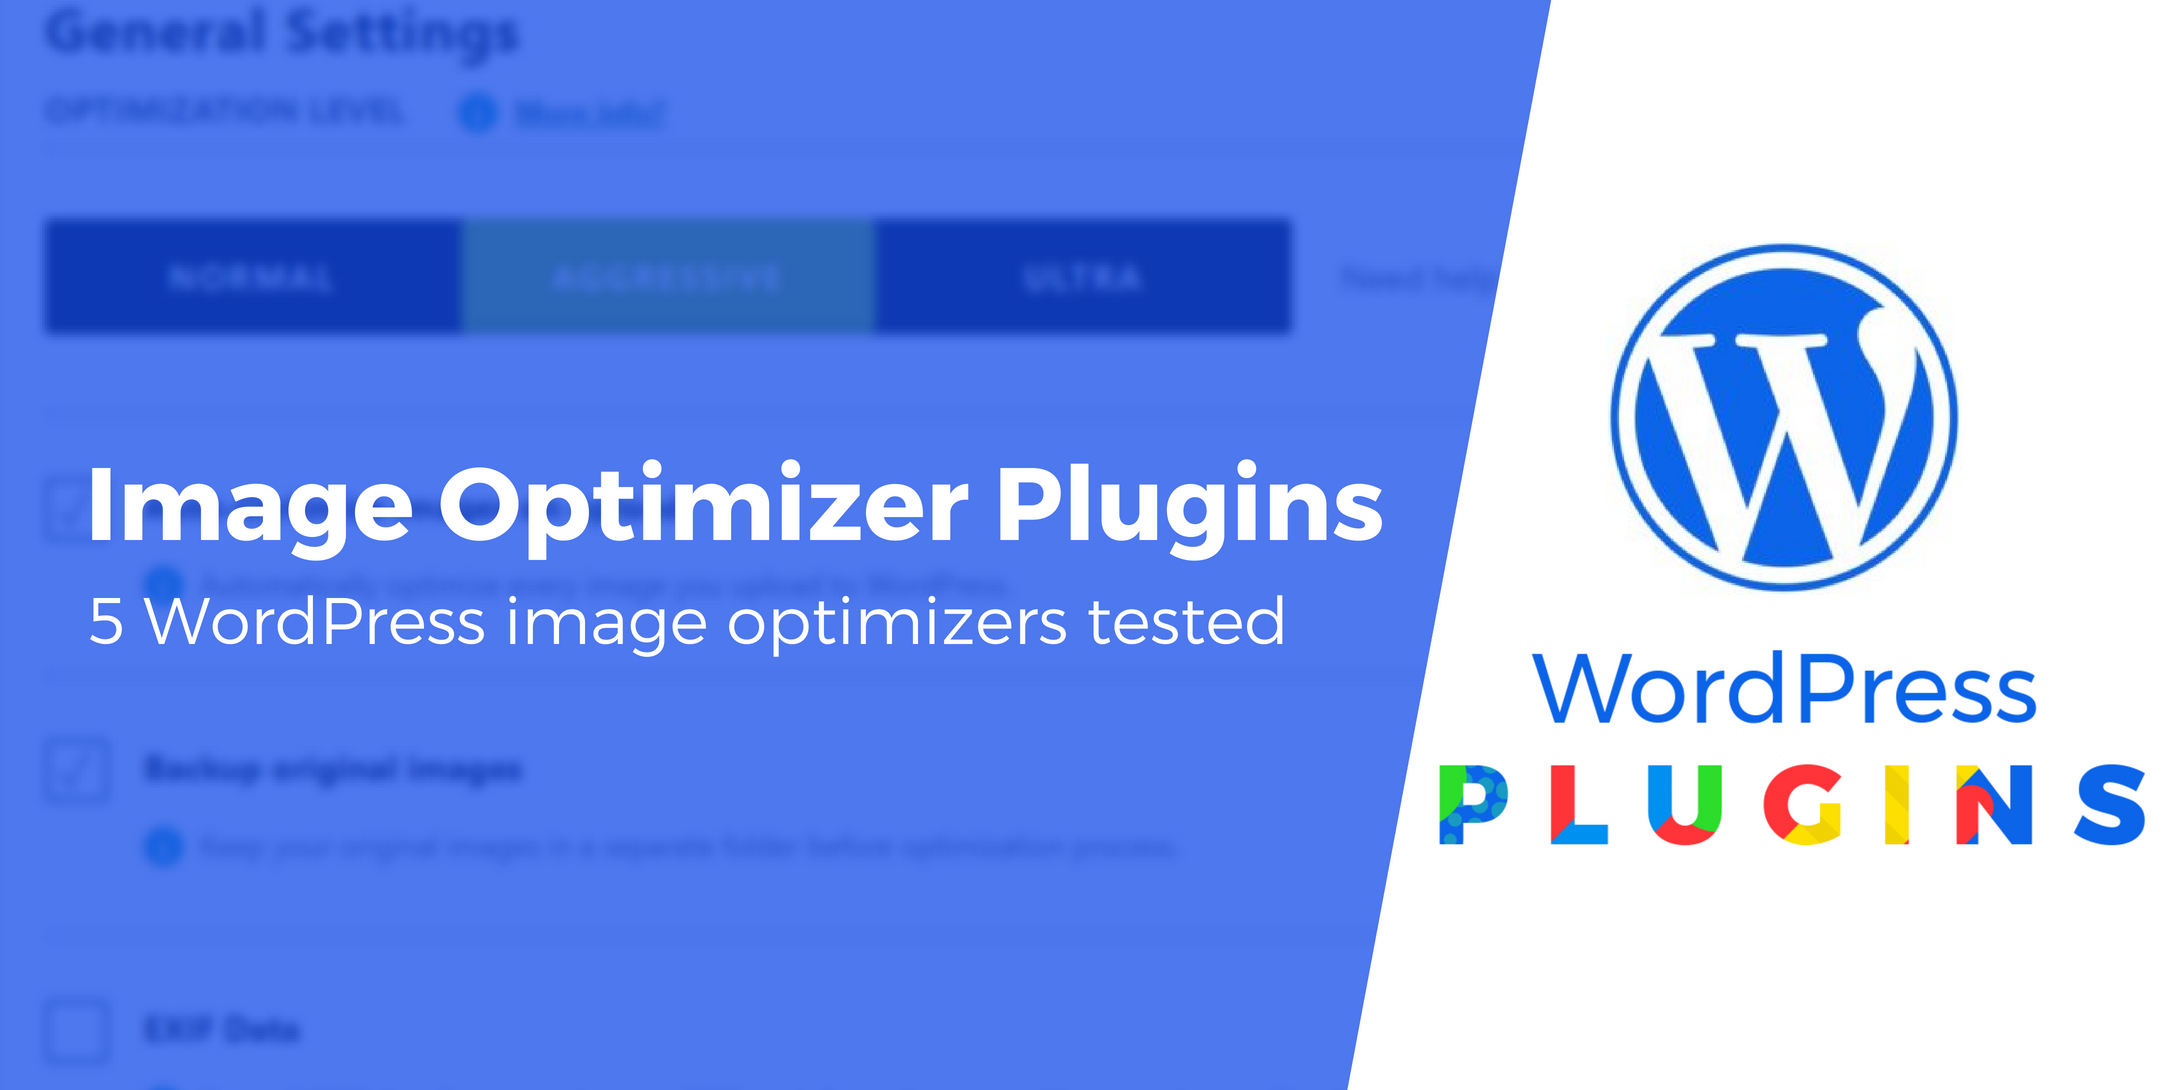 6 Best WordPress Image Optimizer Plugins (Tested and Compared)